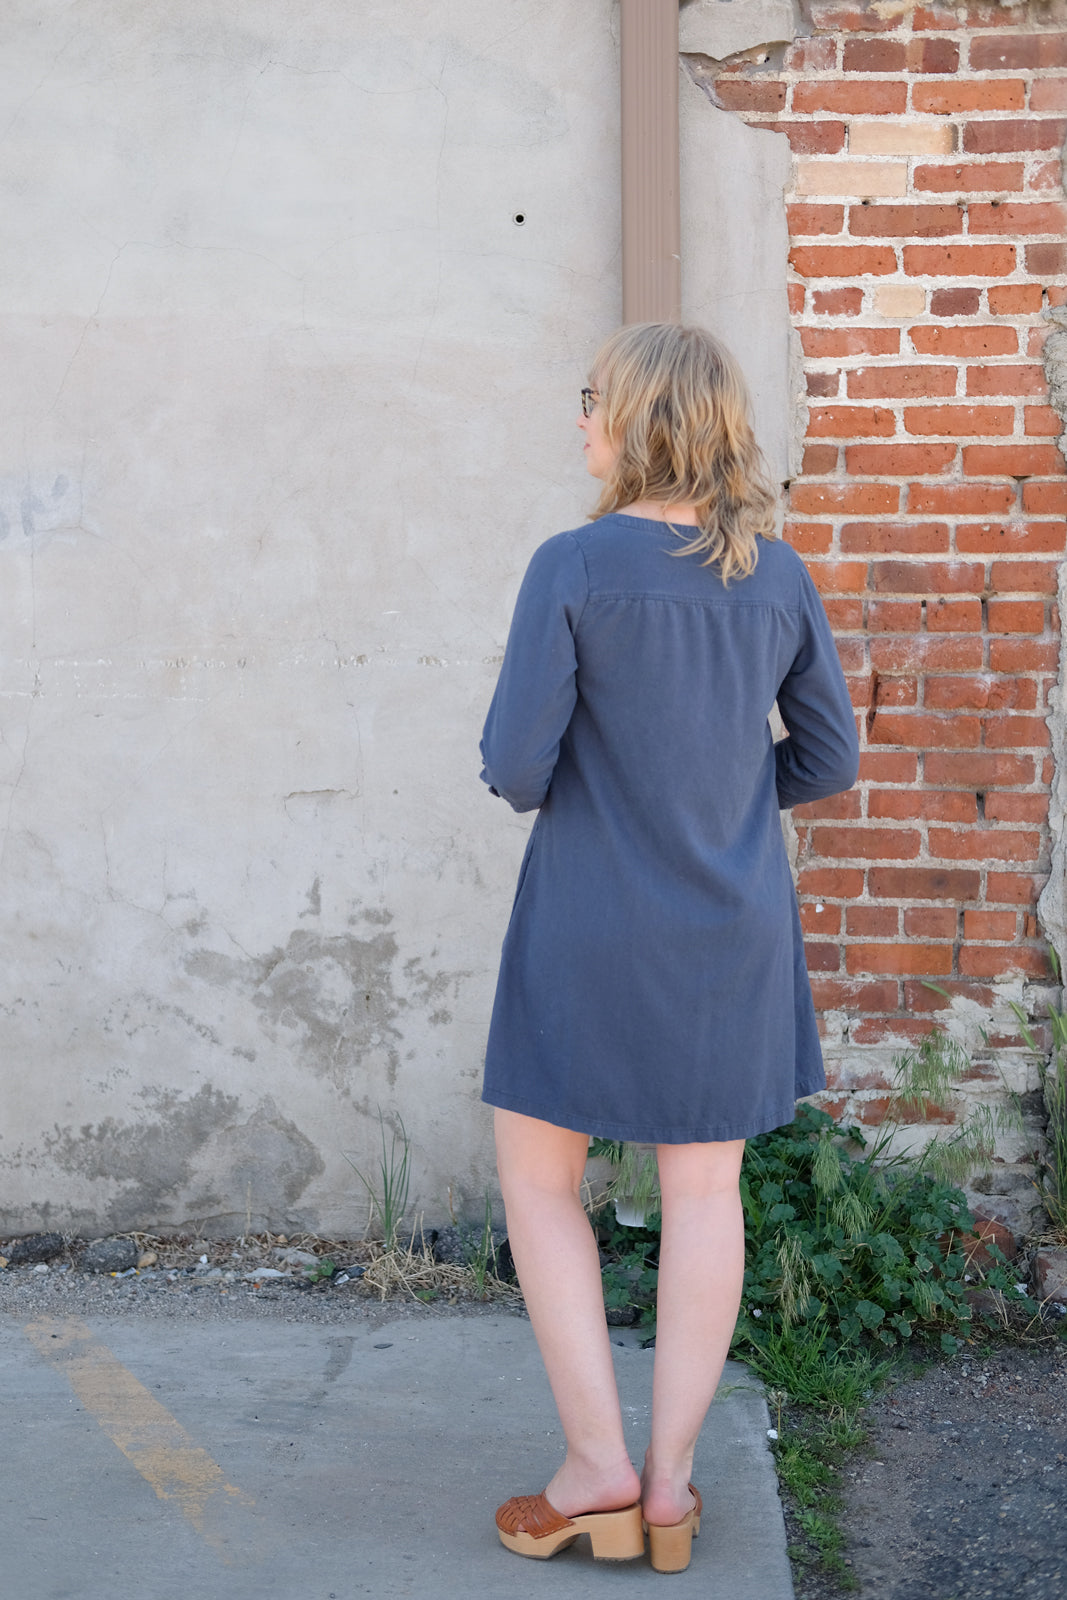 Back View of the Brome View B Dress